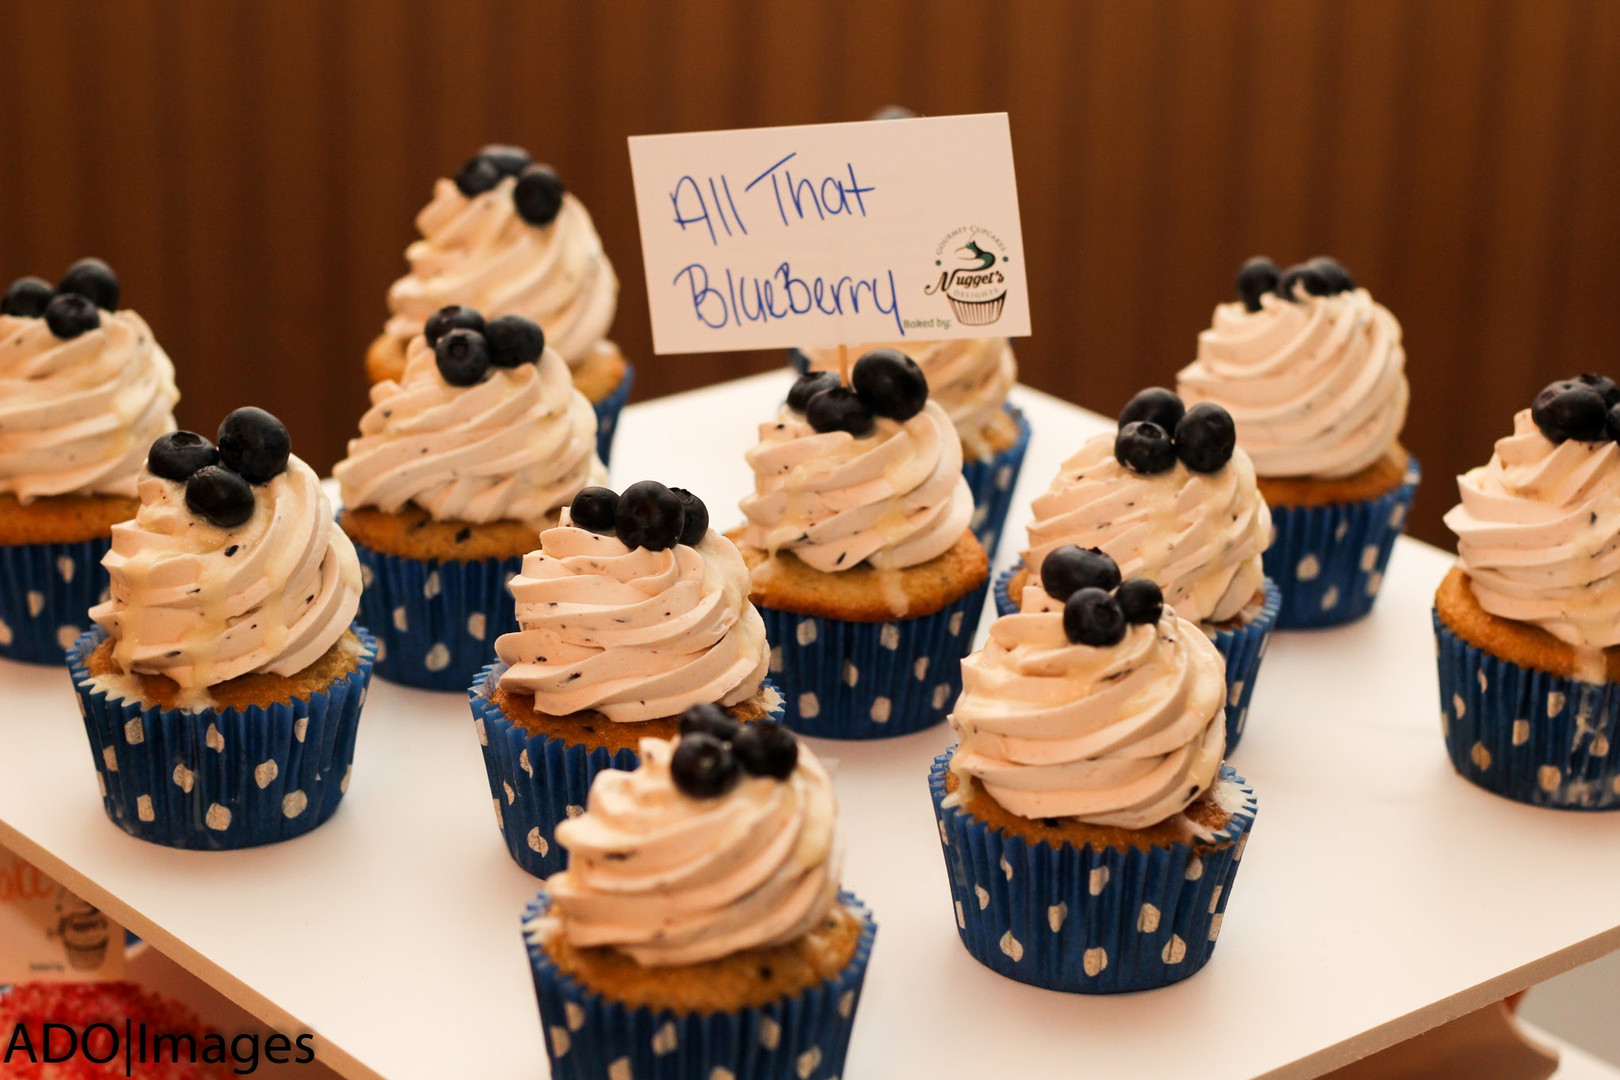 All That Blueberry Cupcakes